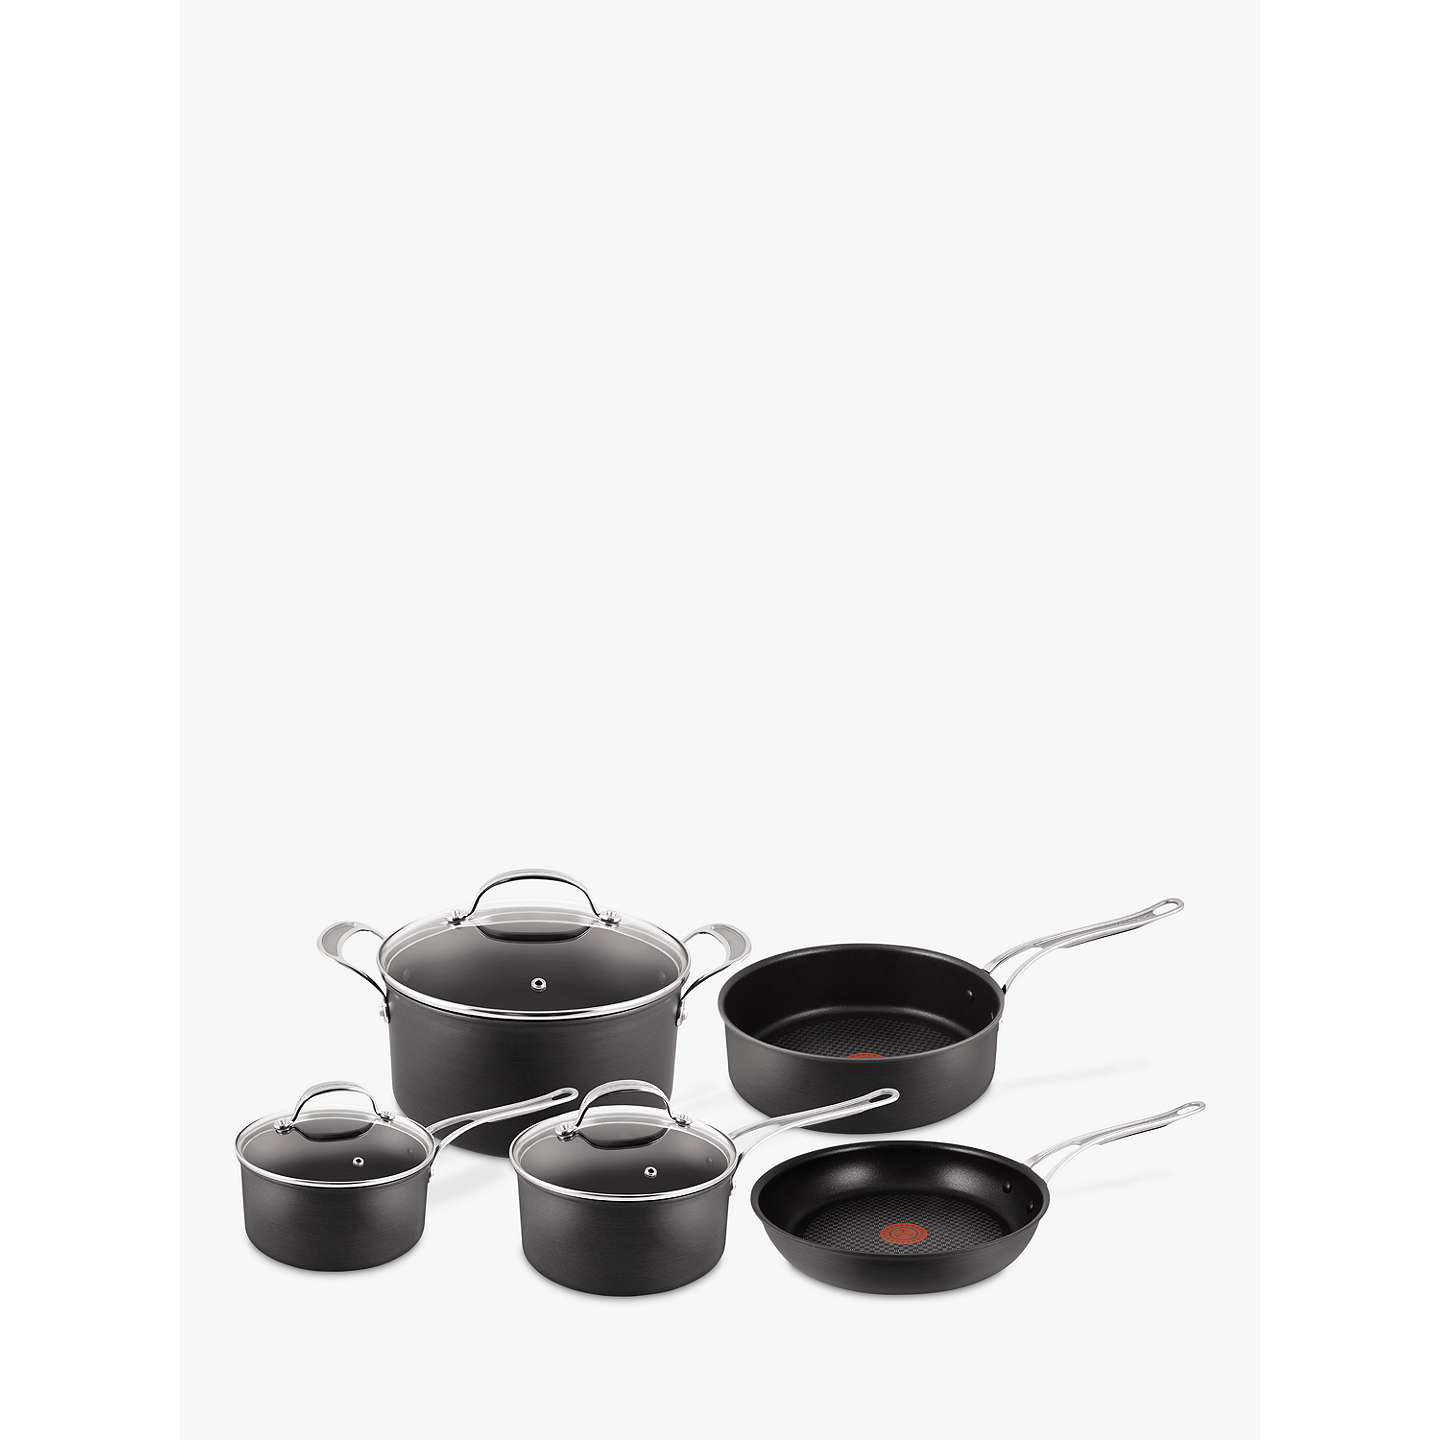 jamie oliver by tefal hard anodised pan set 5 pieces at john lewis. Black Bedroom Furniture Sets. Home Design Ideas